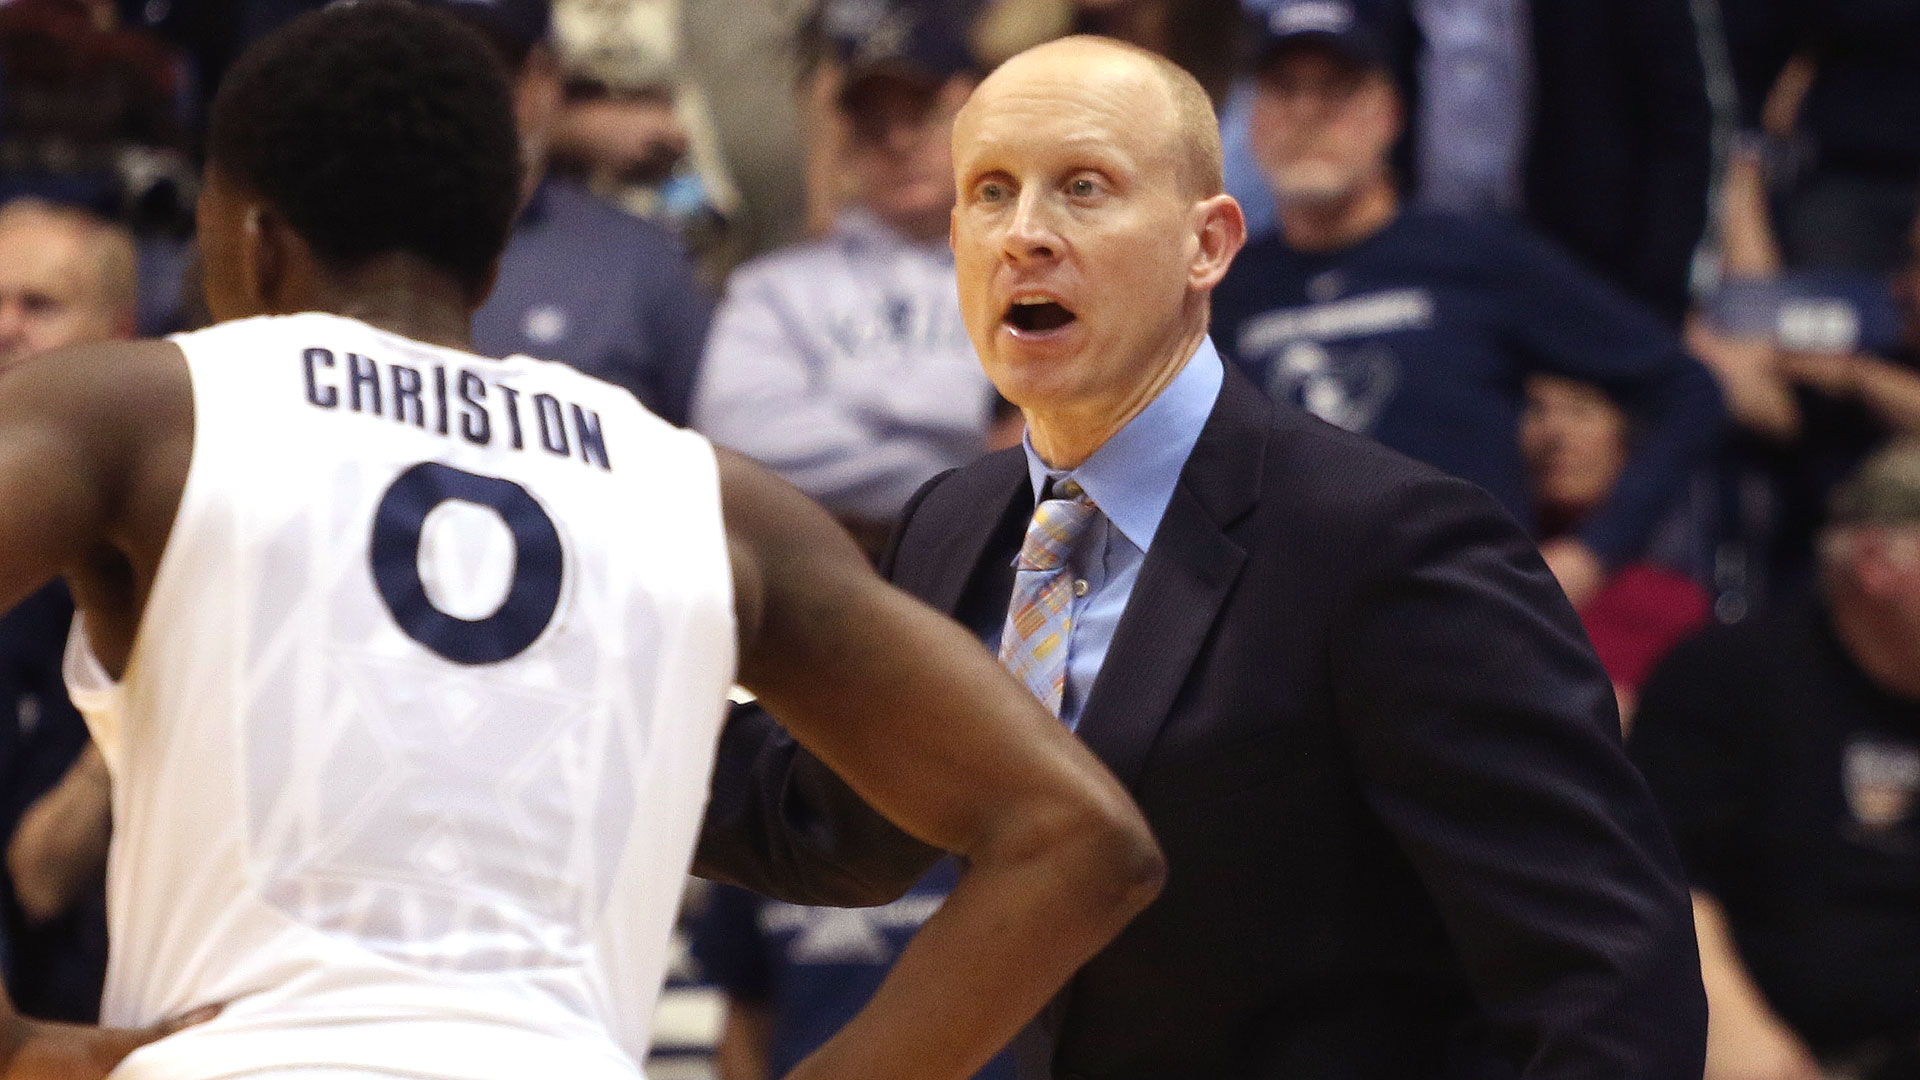 Chris Mack-031714-AP-FTR.jpg